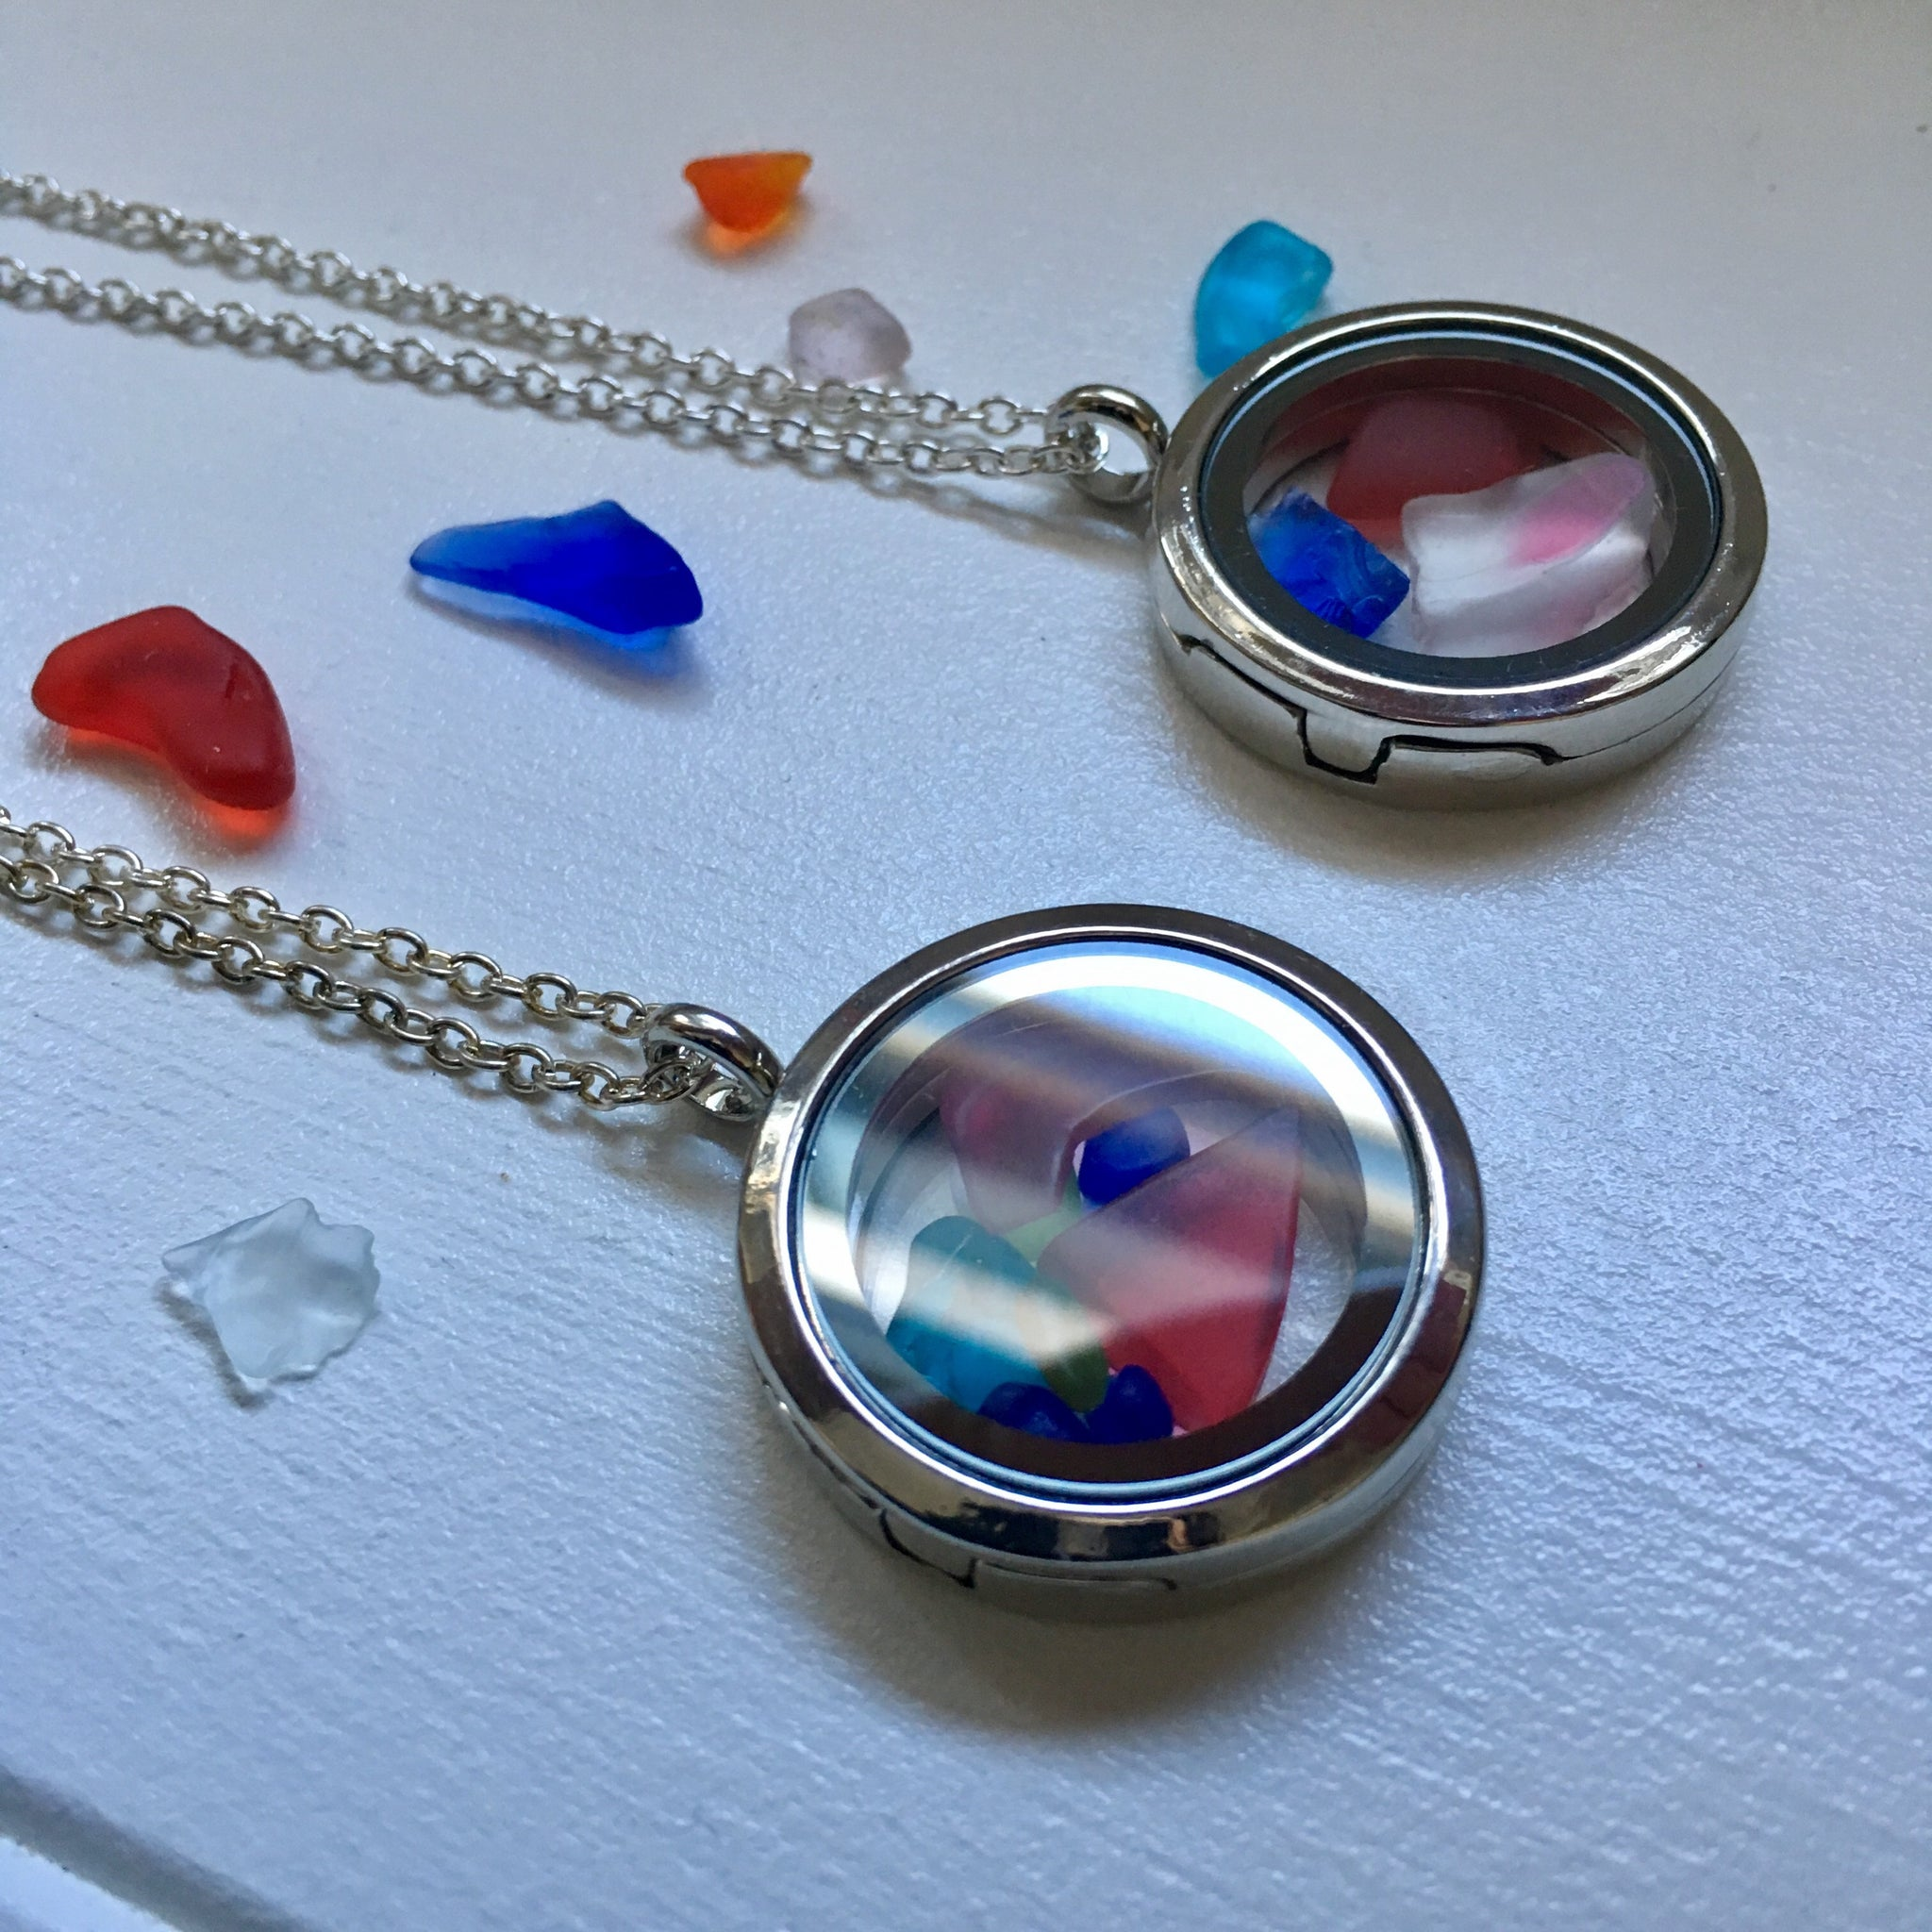 Two seaglass lockets for Melissa ( Custom order)